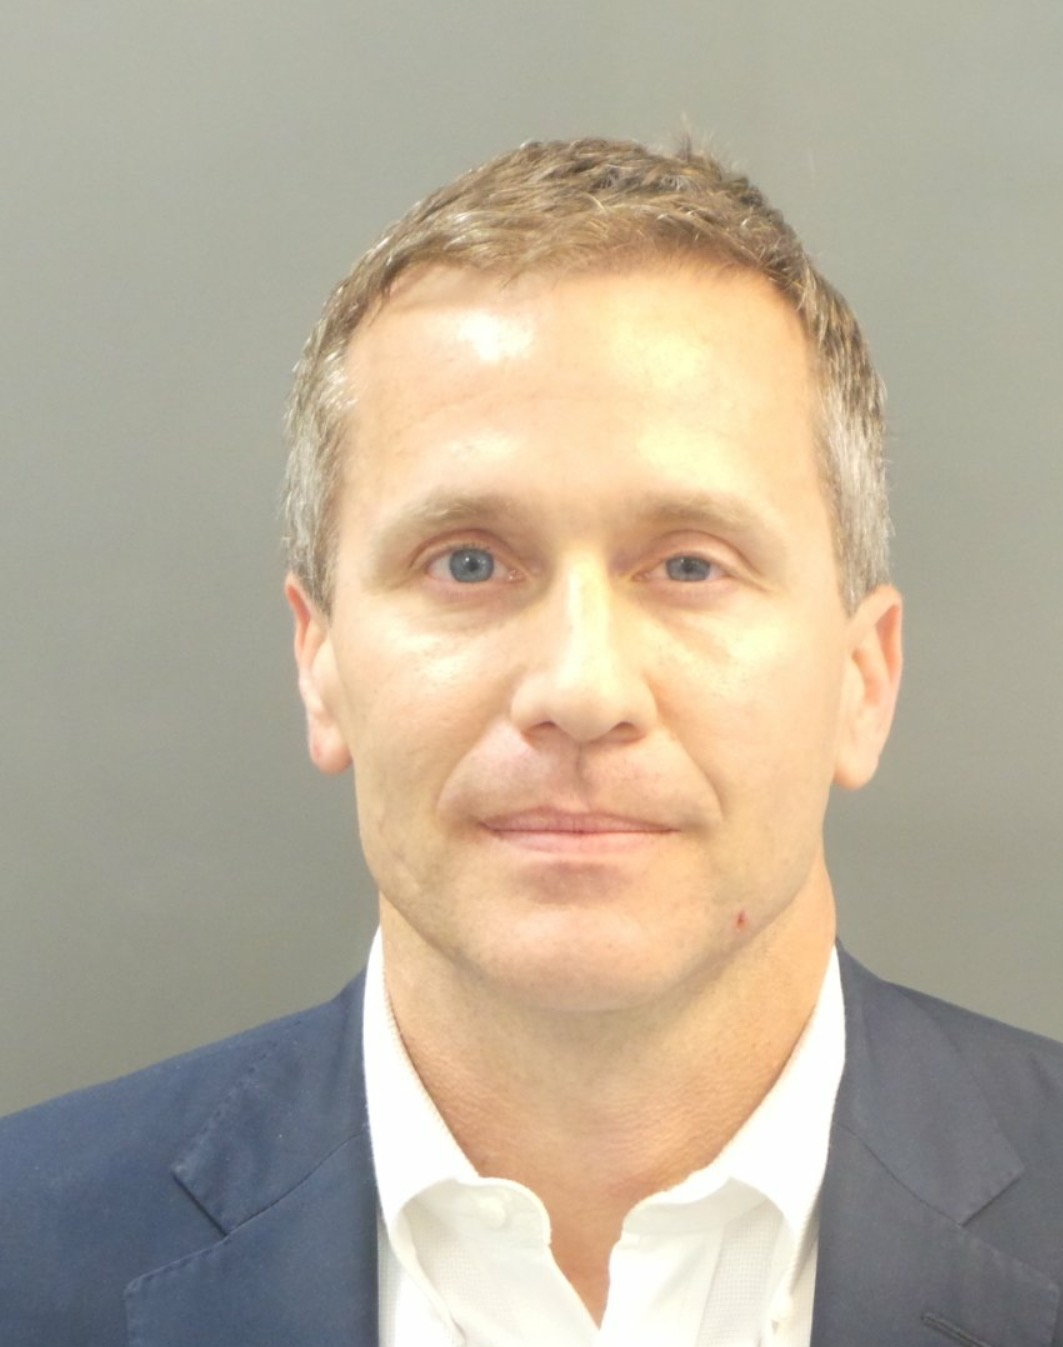 What to Know About the Scandal Engulfing Missouri Governor Eric Greitens